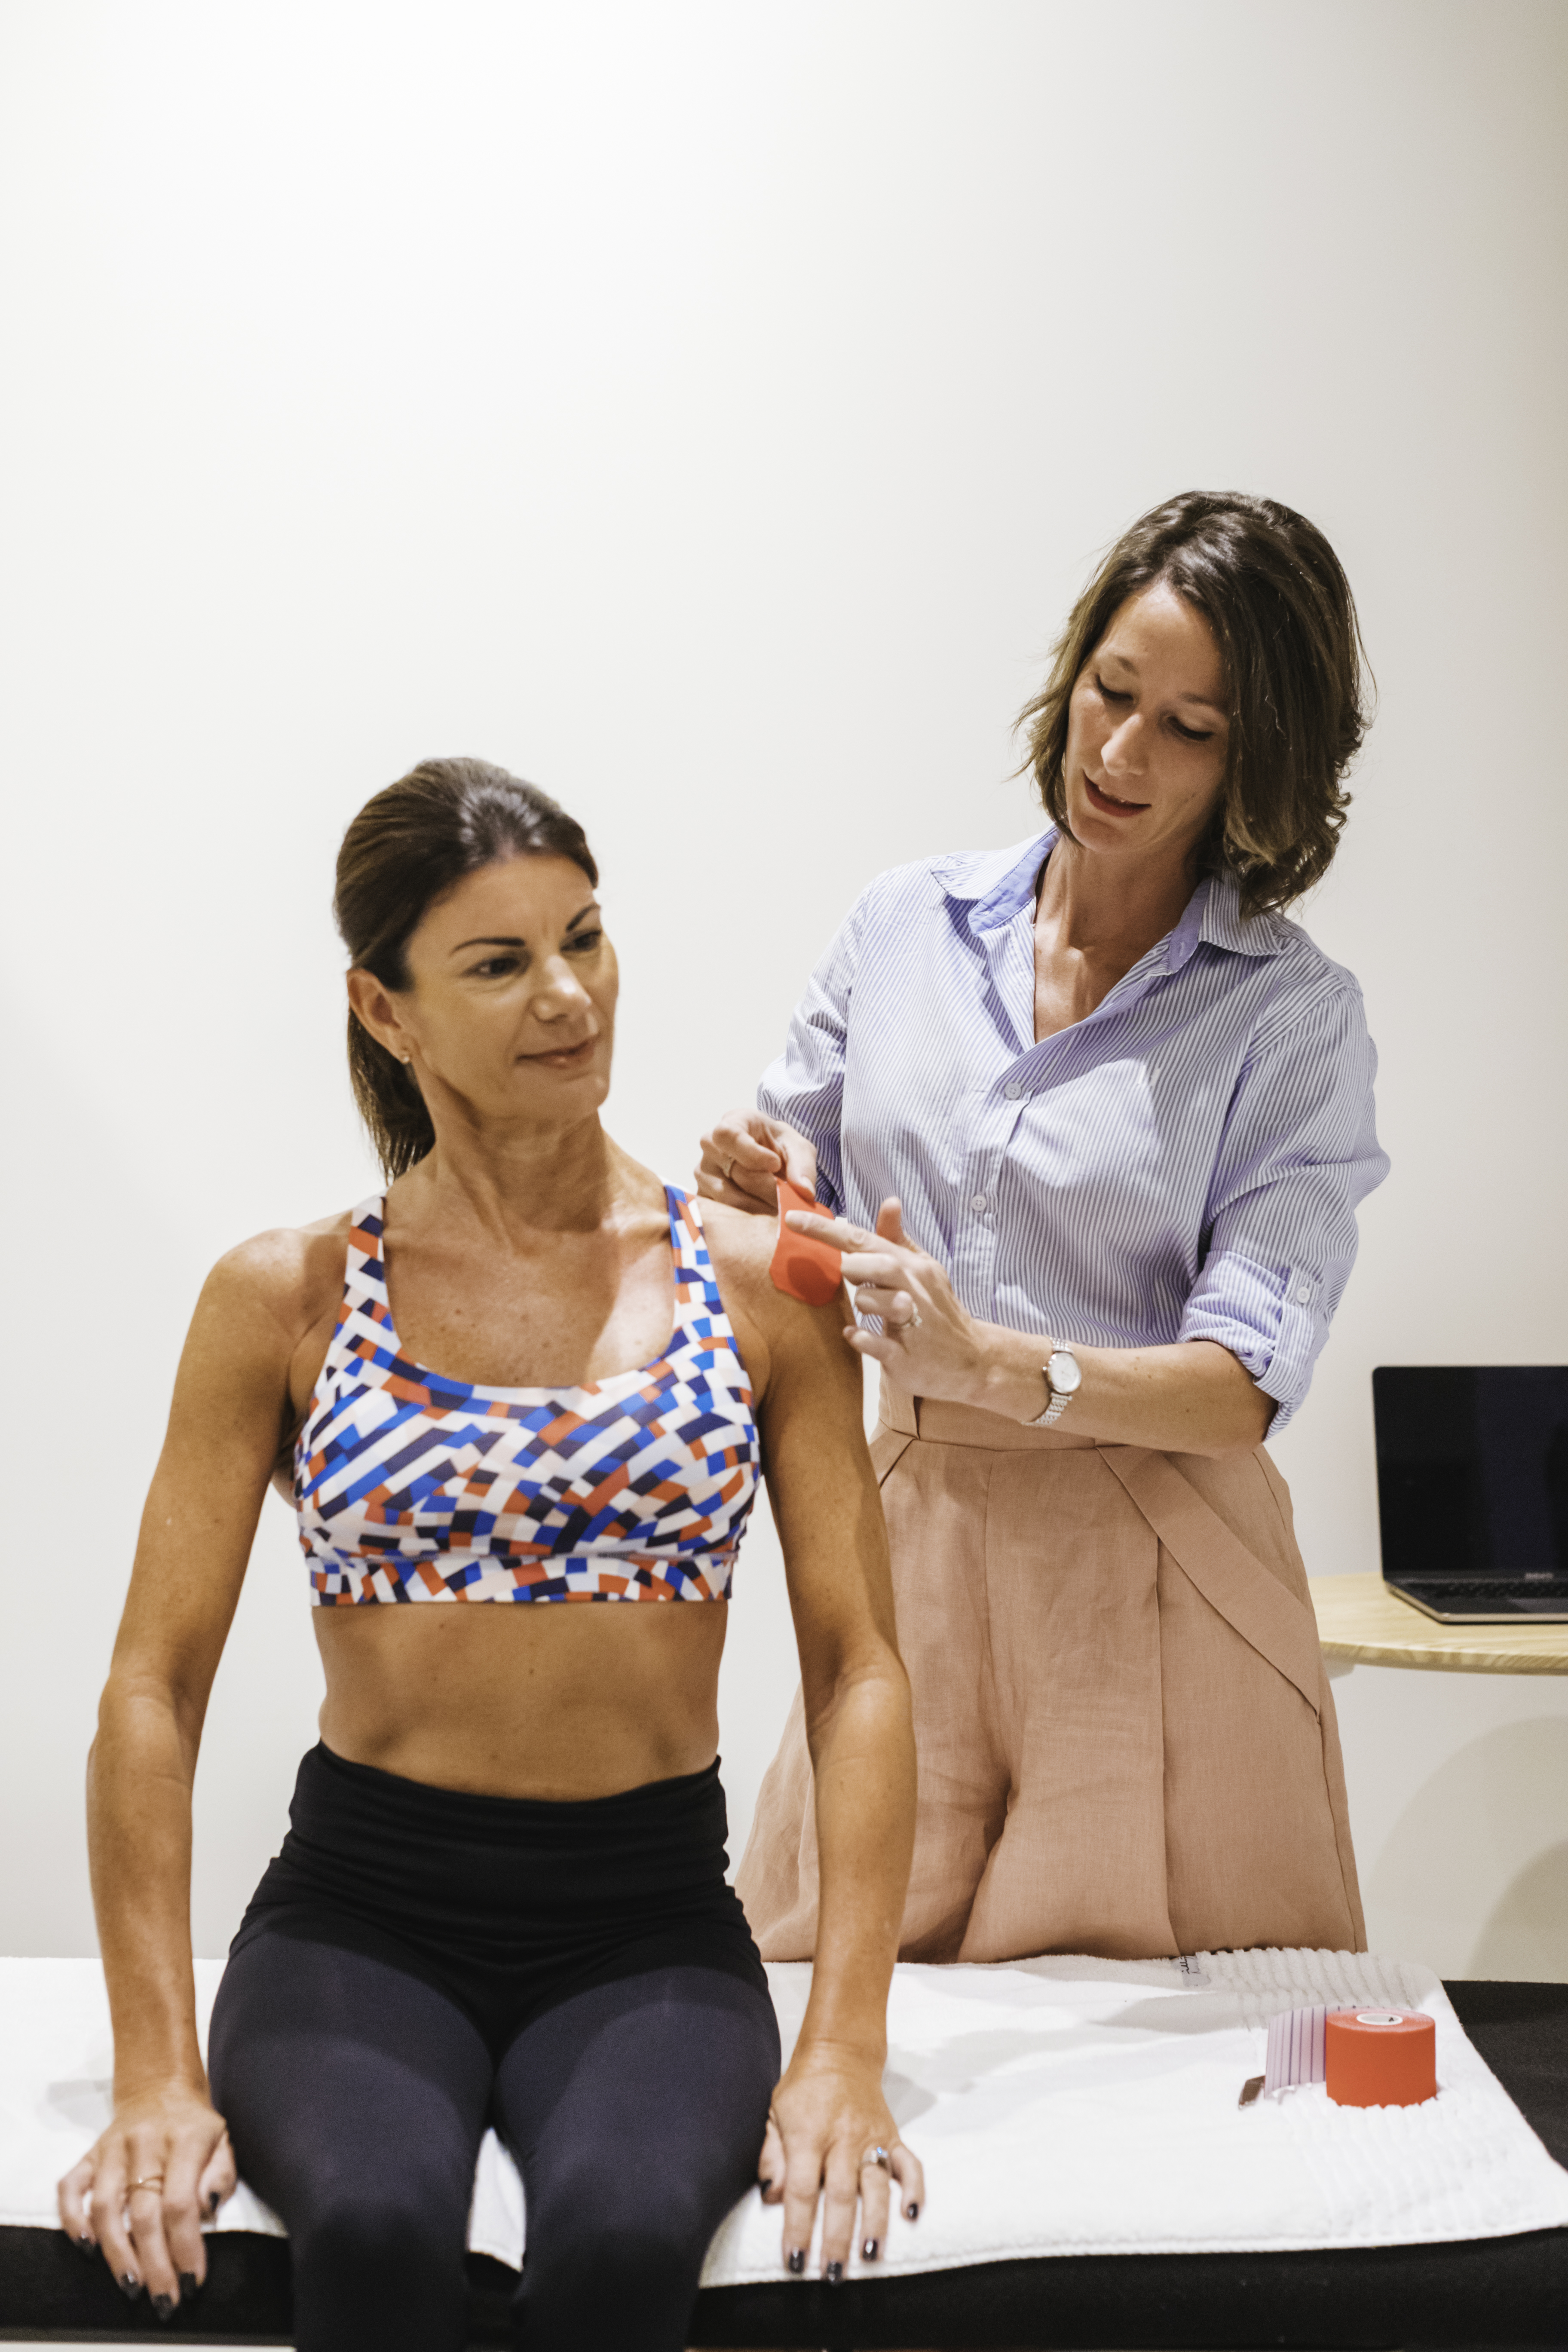 a physiotherapist working during a session